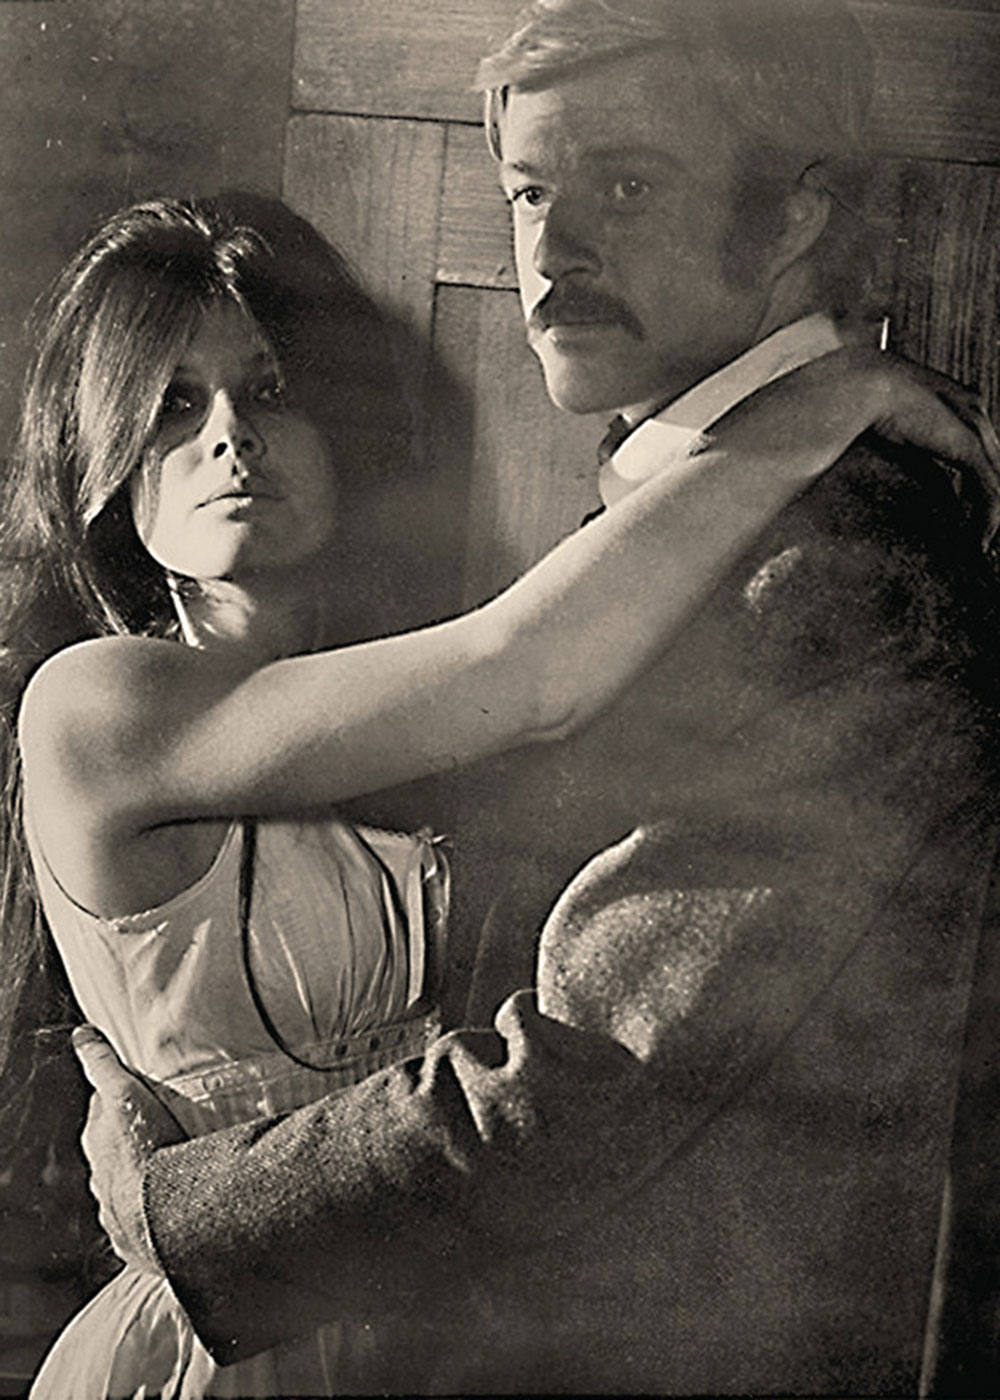 katharine ross robert redford butch cassidy and the sundance kid true west magazine